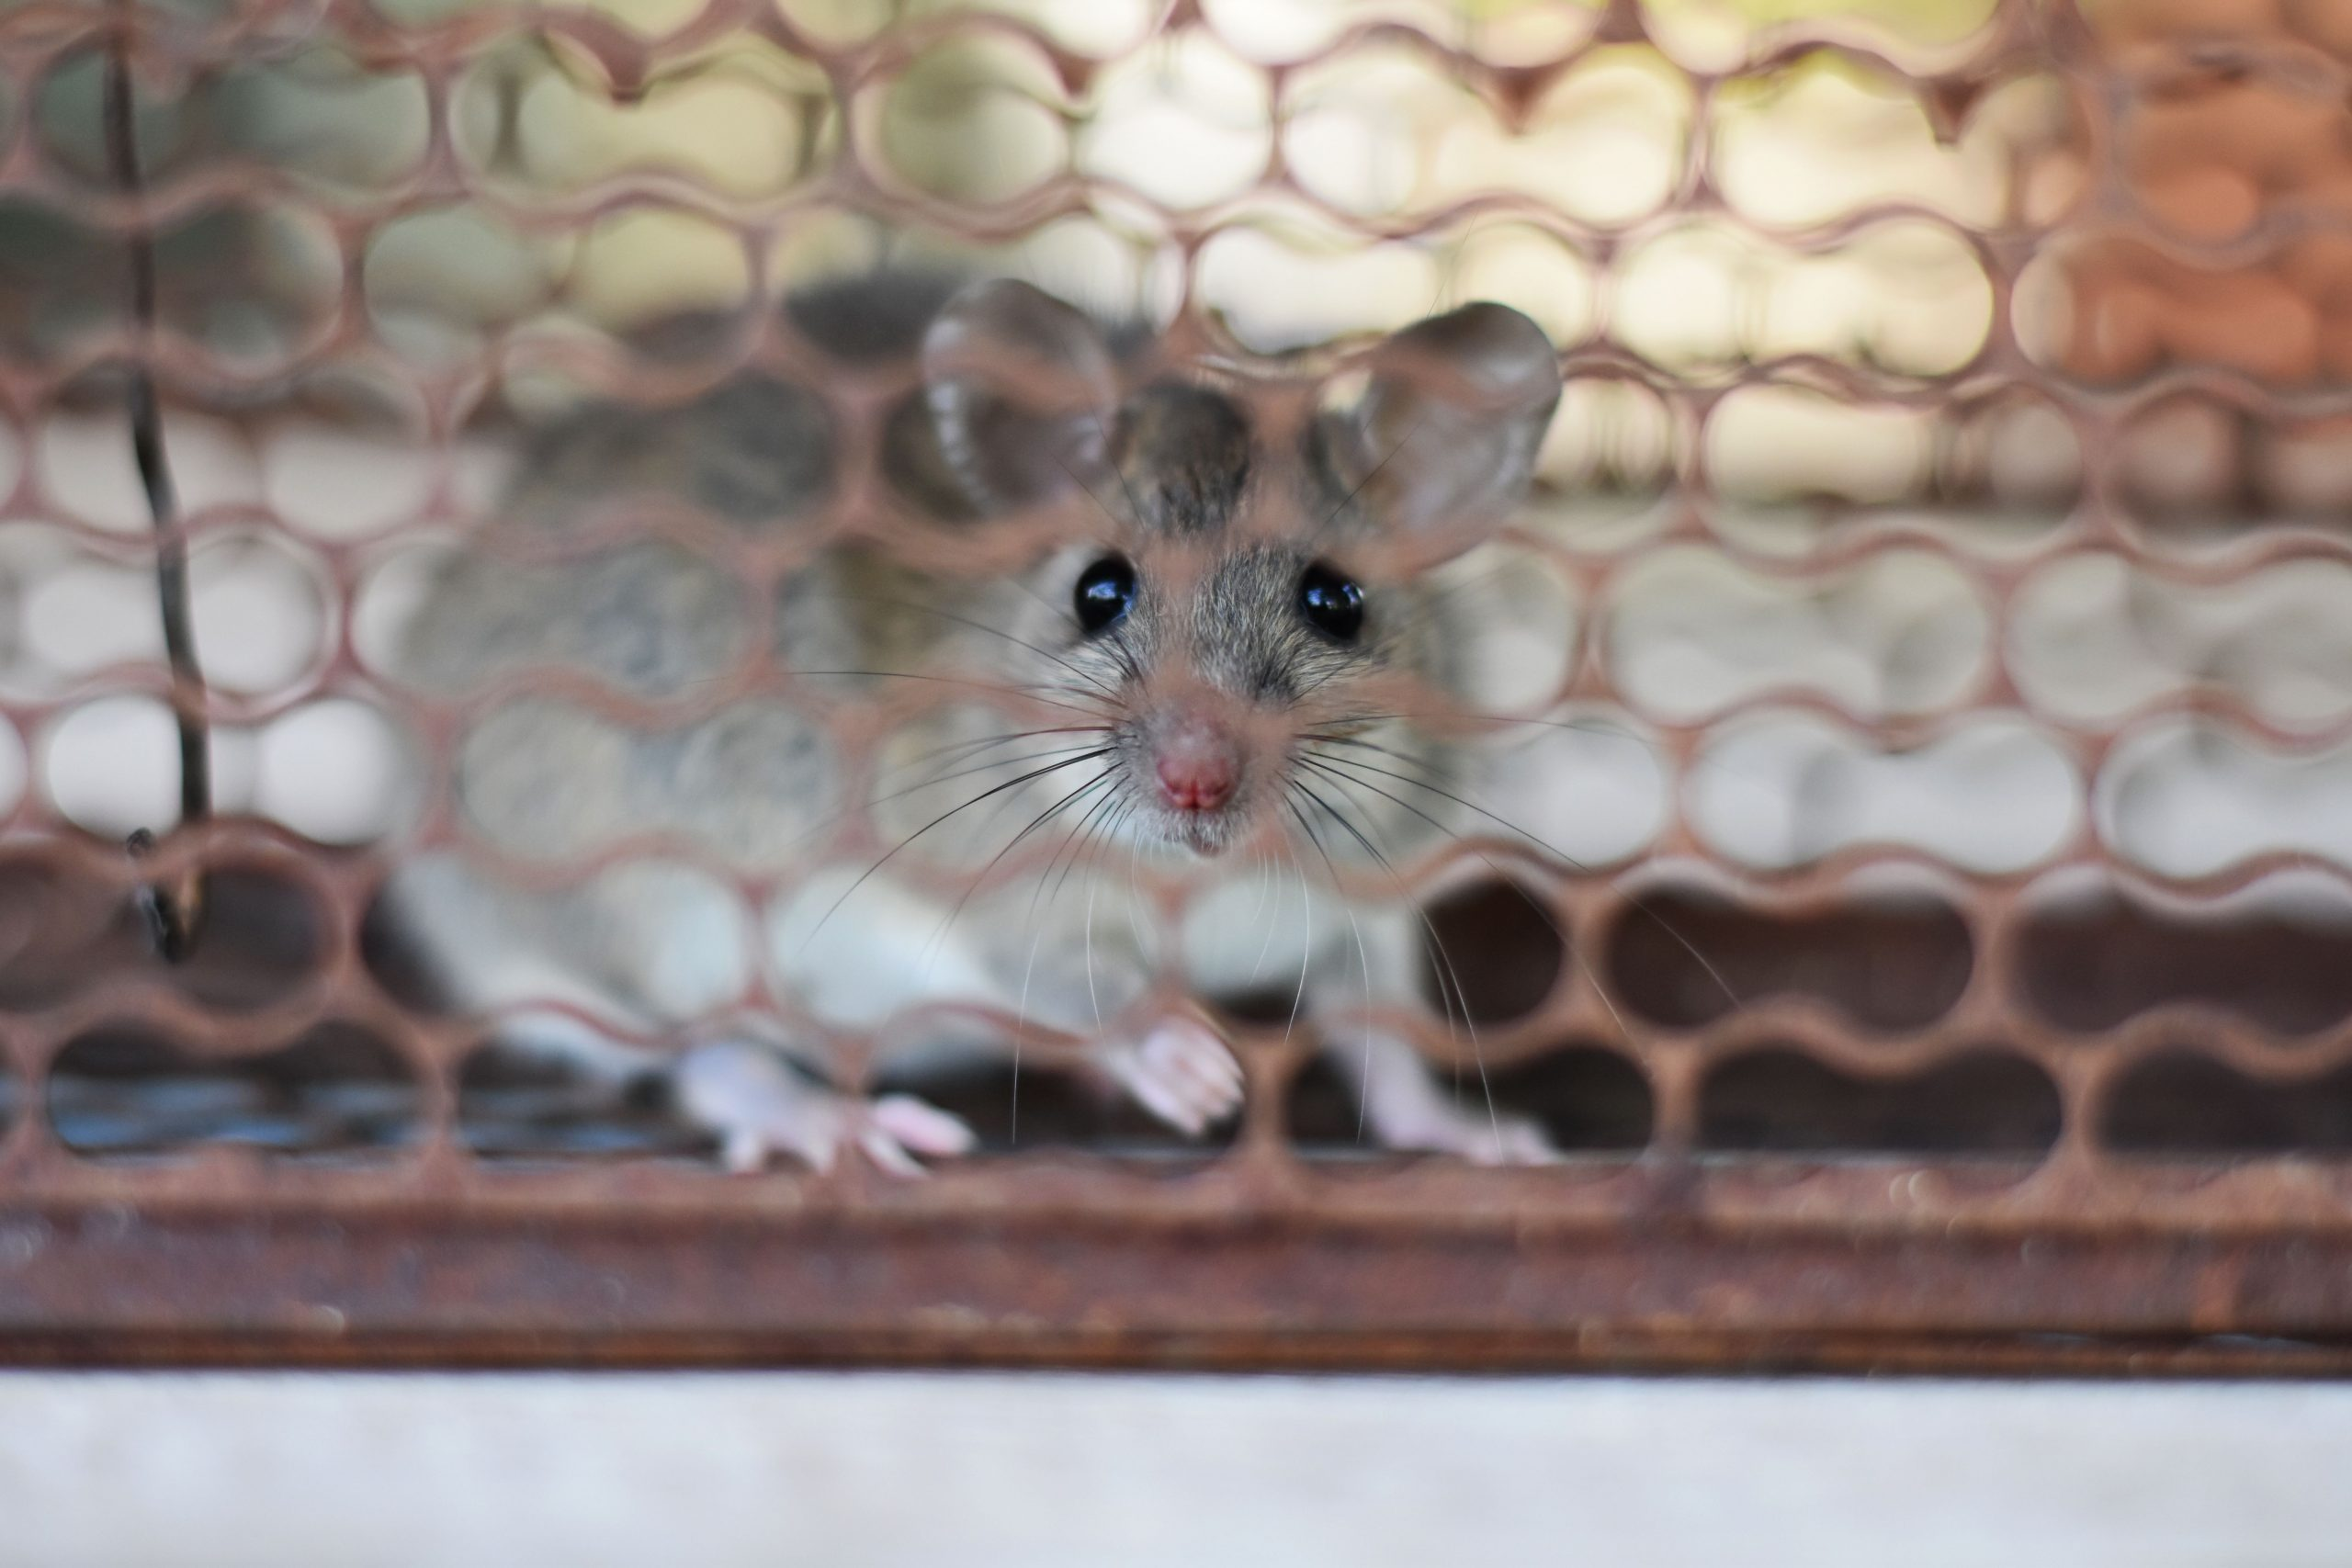 A mouse stuck in a live trap